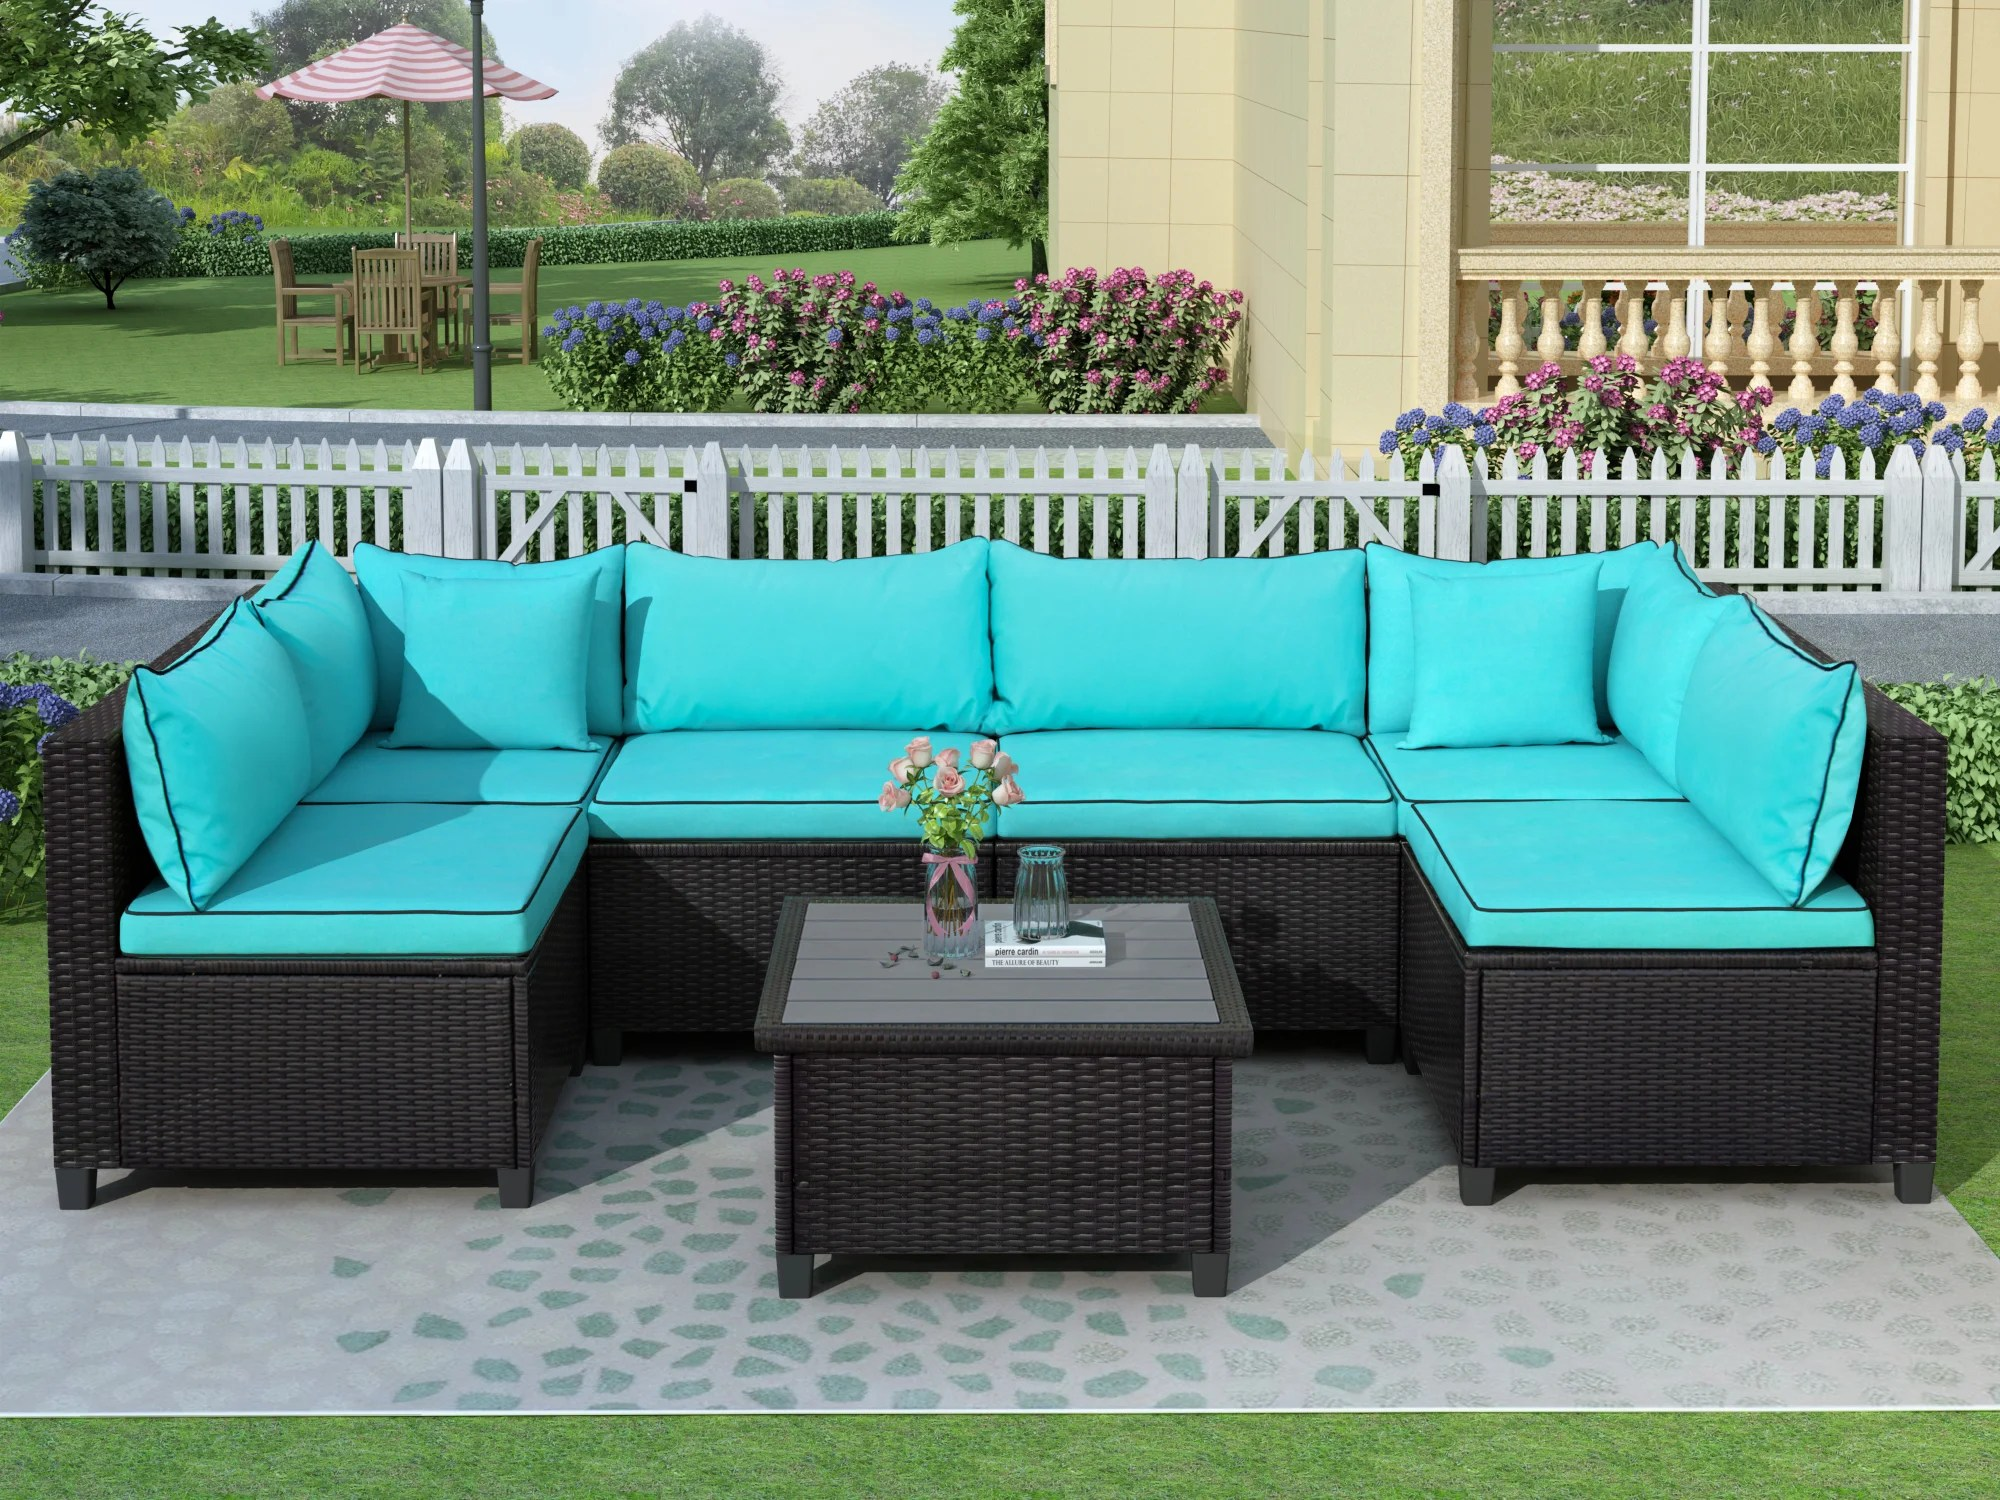 quality rattan wicker patio set u shape sectional outdoor furniture set with cushions and accent pillows green